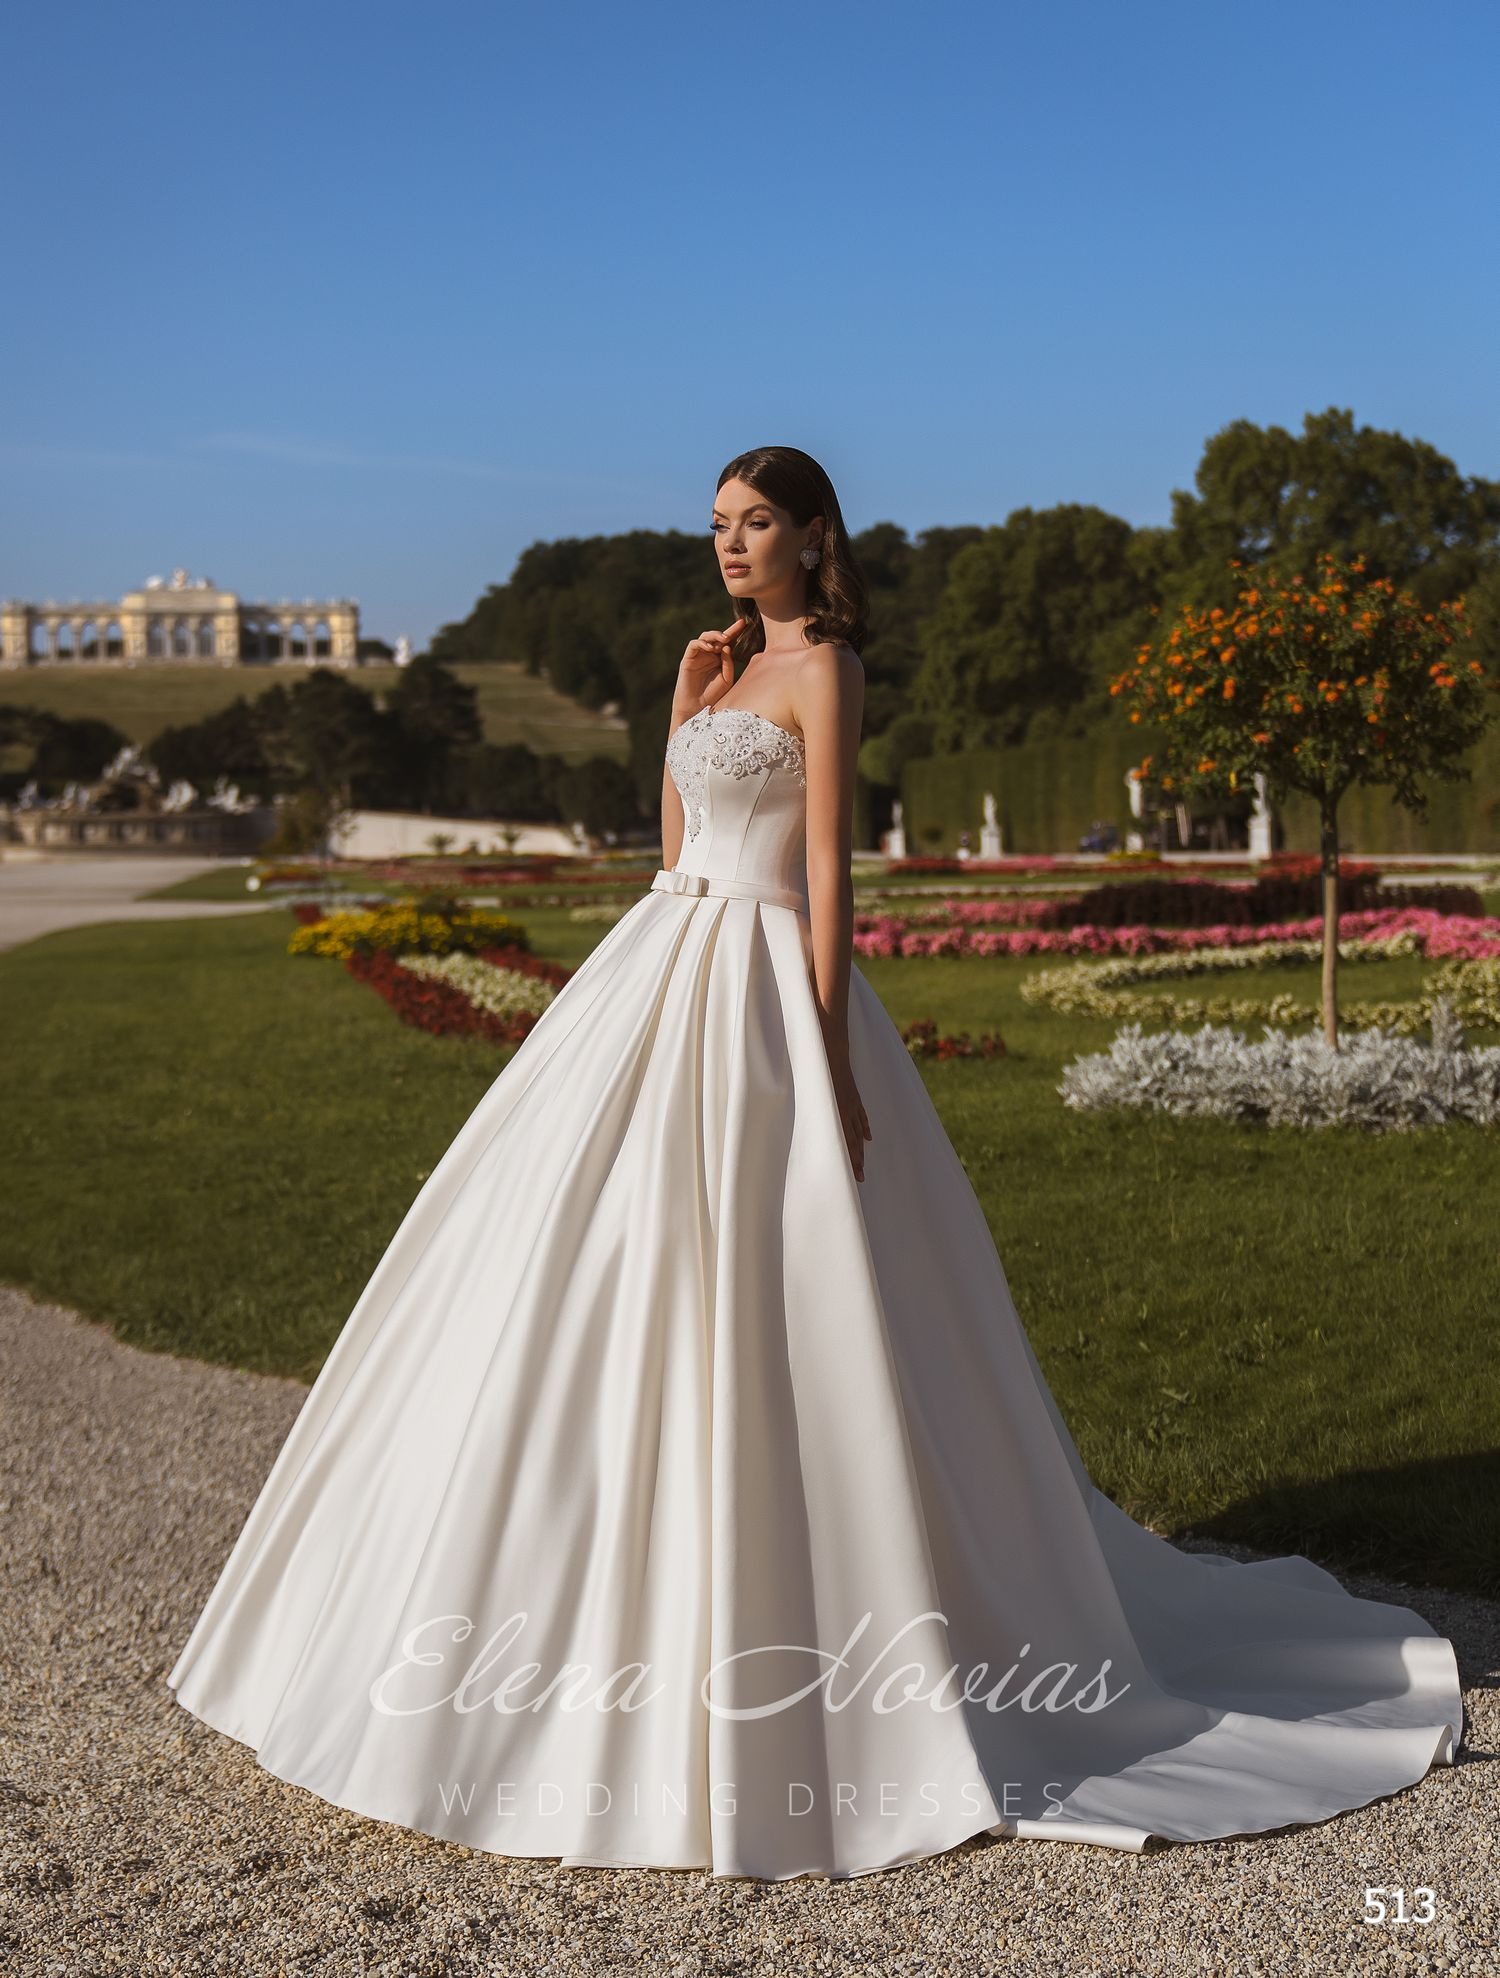 Wedding dresses 513 1